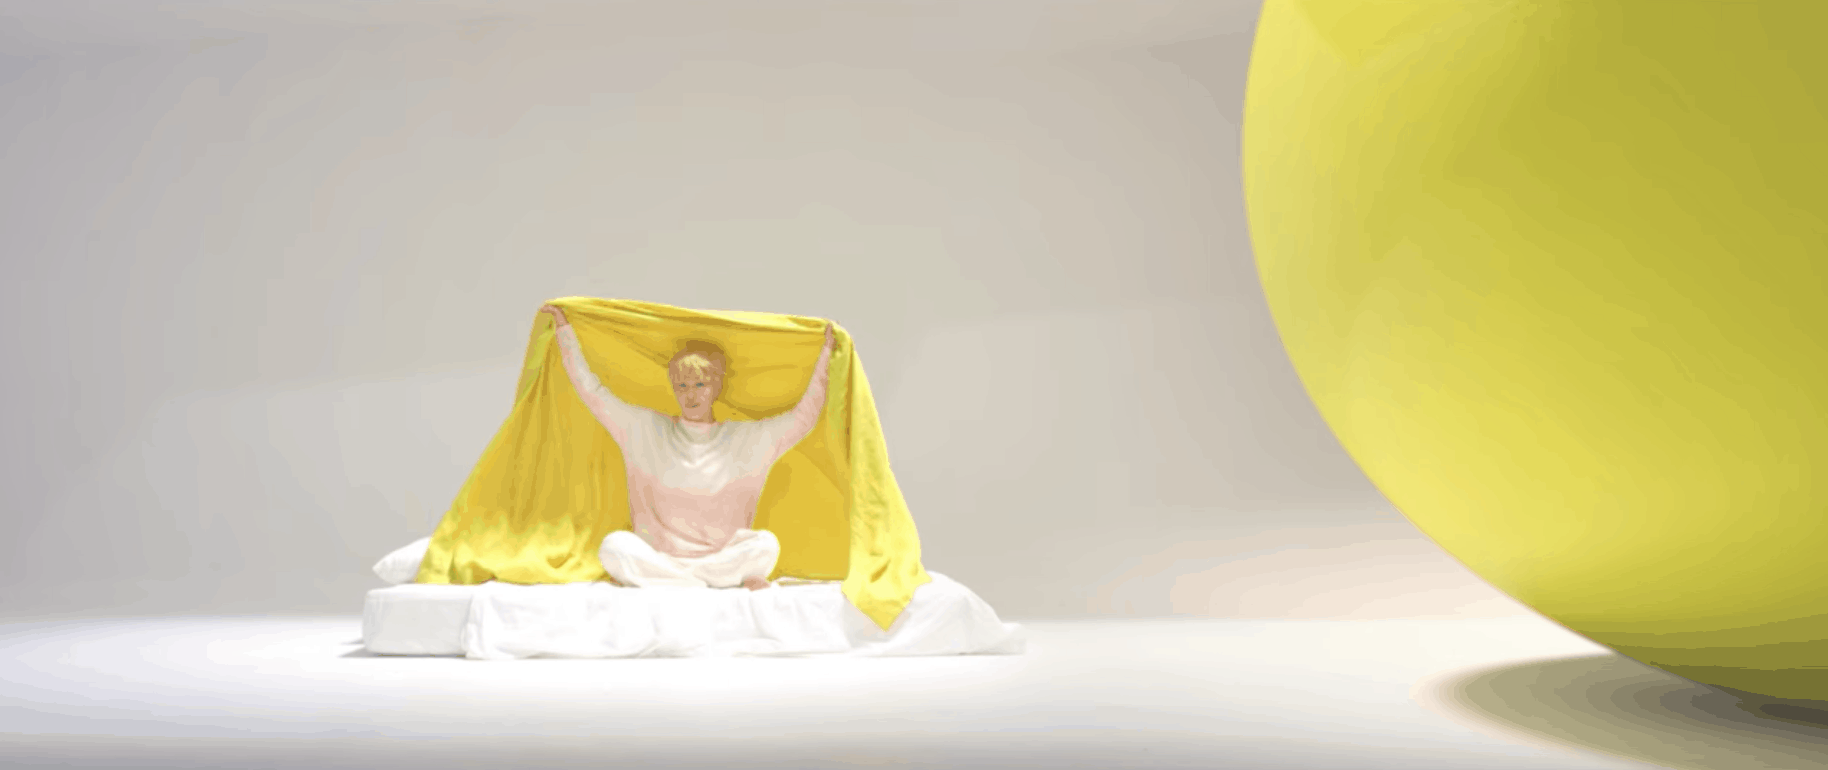 BTS Serendipity music video: Band member on a white floor covered with a bright yellow sheet, sitting next to an oversized yellow ball